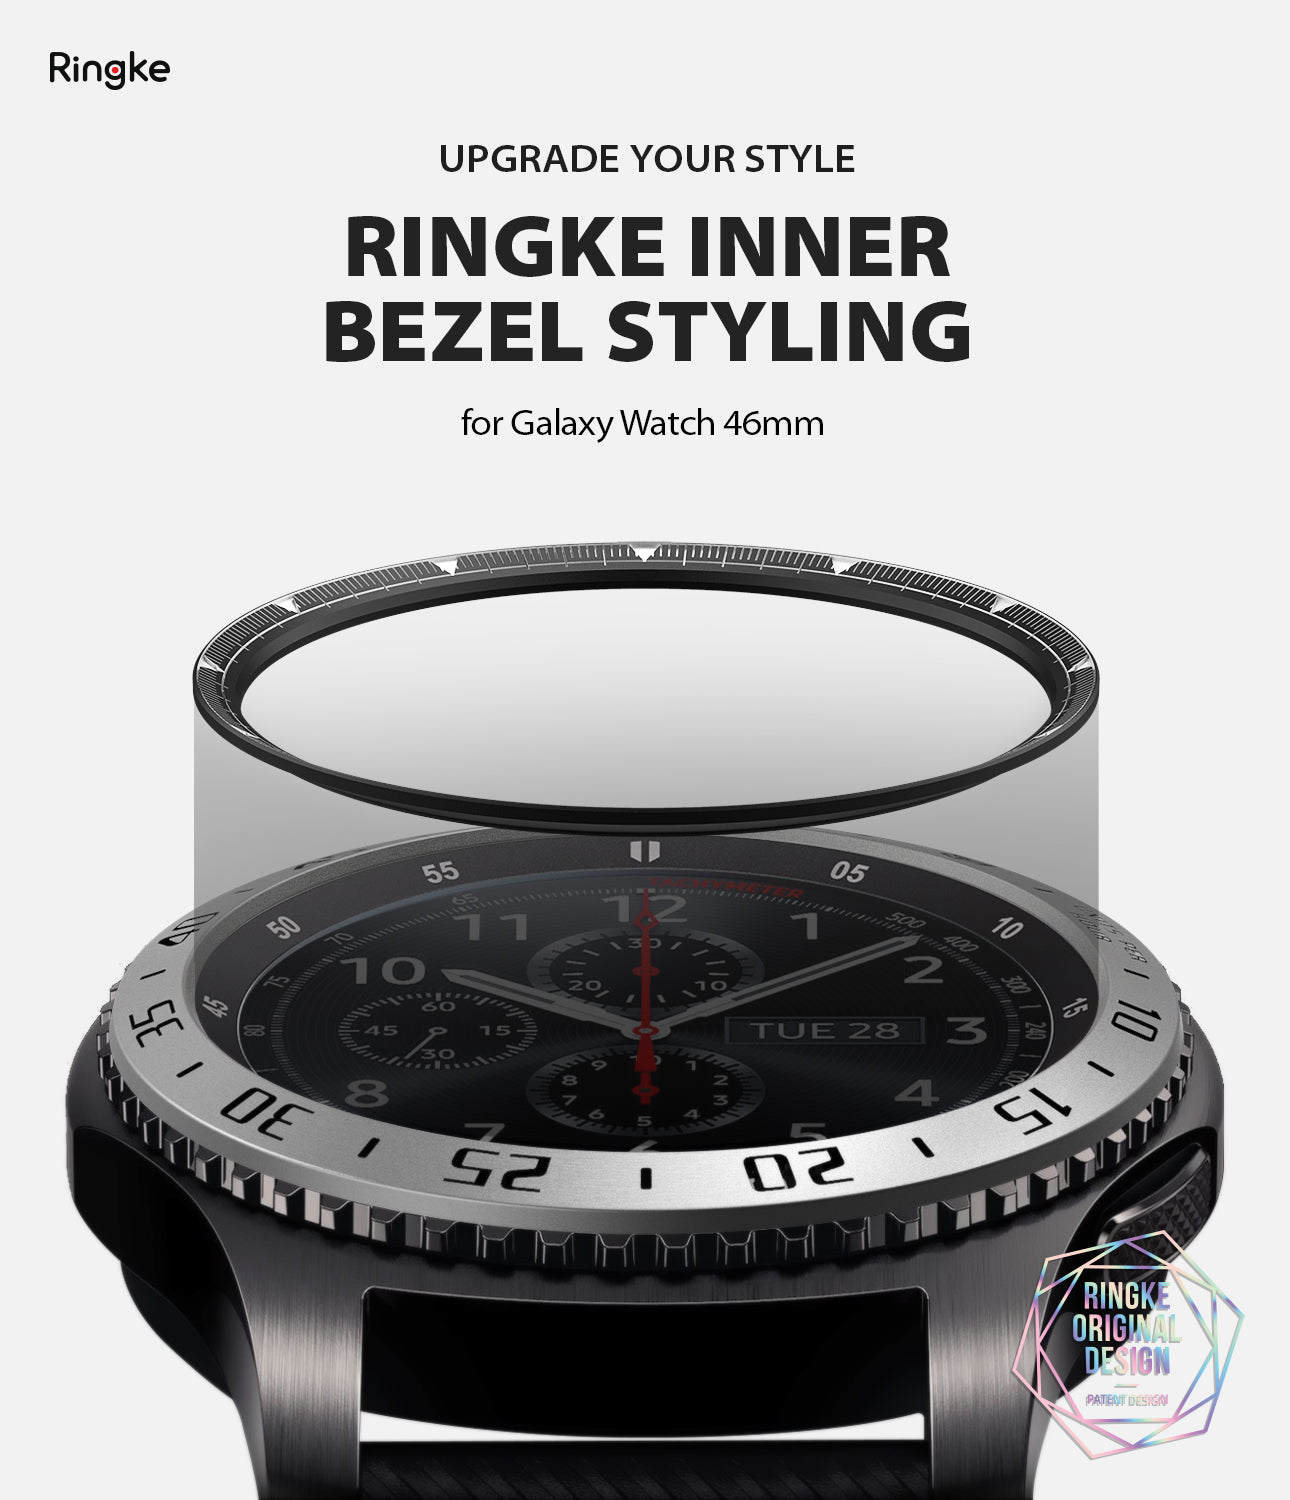 ringke inner bezel styling for samsung galaxy watch 46mm, gear s3 frontier, and gear s3 classic, 46-inner-02, stainless steel,